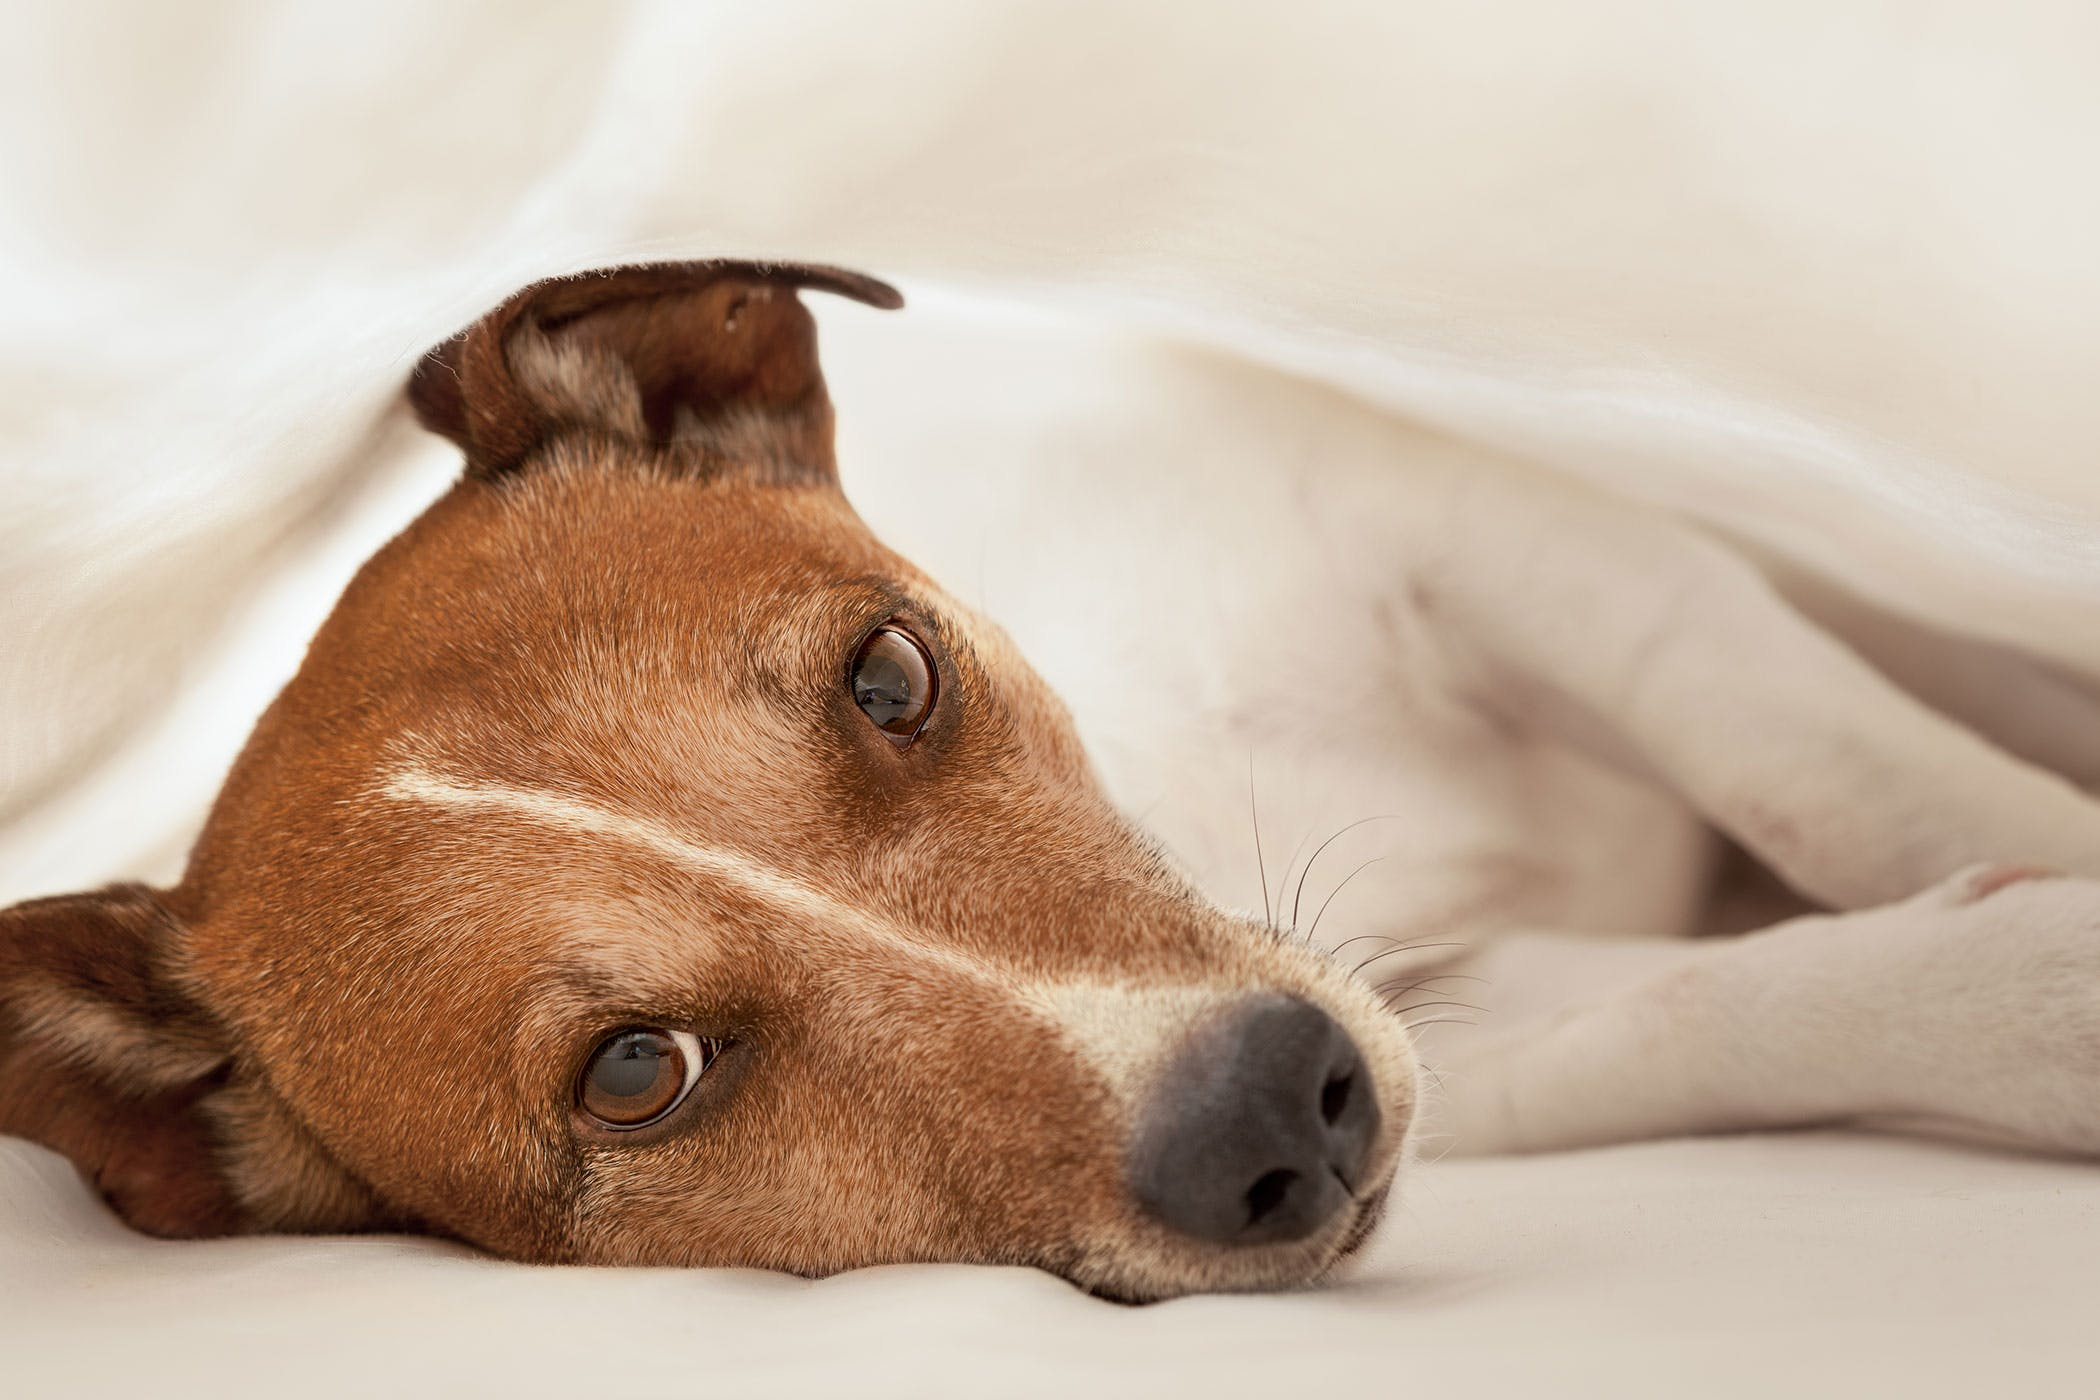 Spleen and Liver Hemangiosarcoma in Dogs - Symptoms, Causes